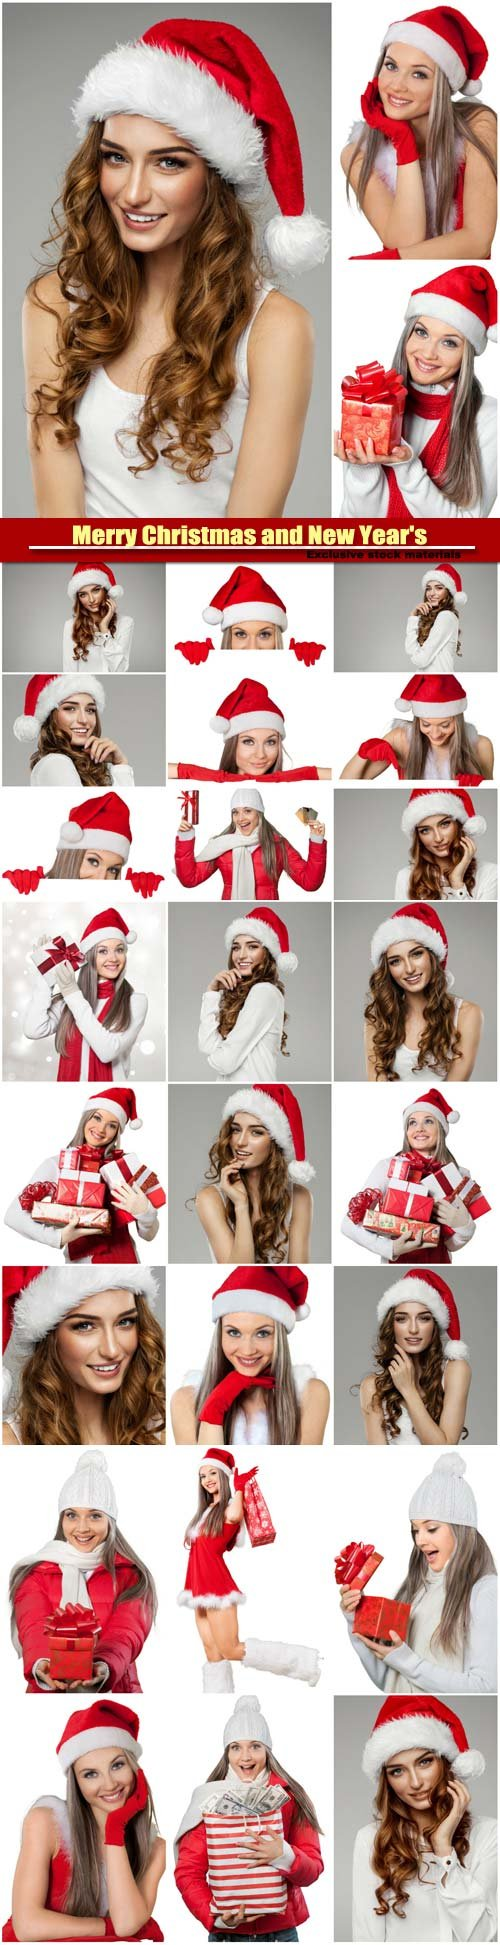 Beautiful female model wear santa hat, Merry Christmas and New Year's